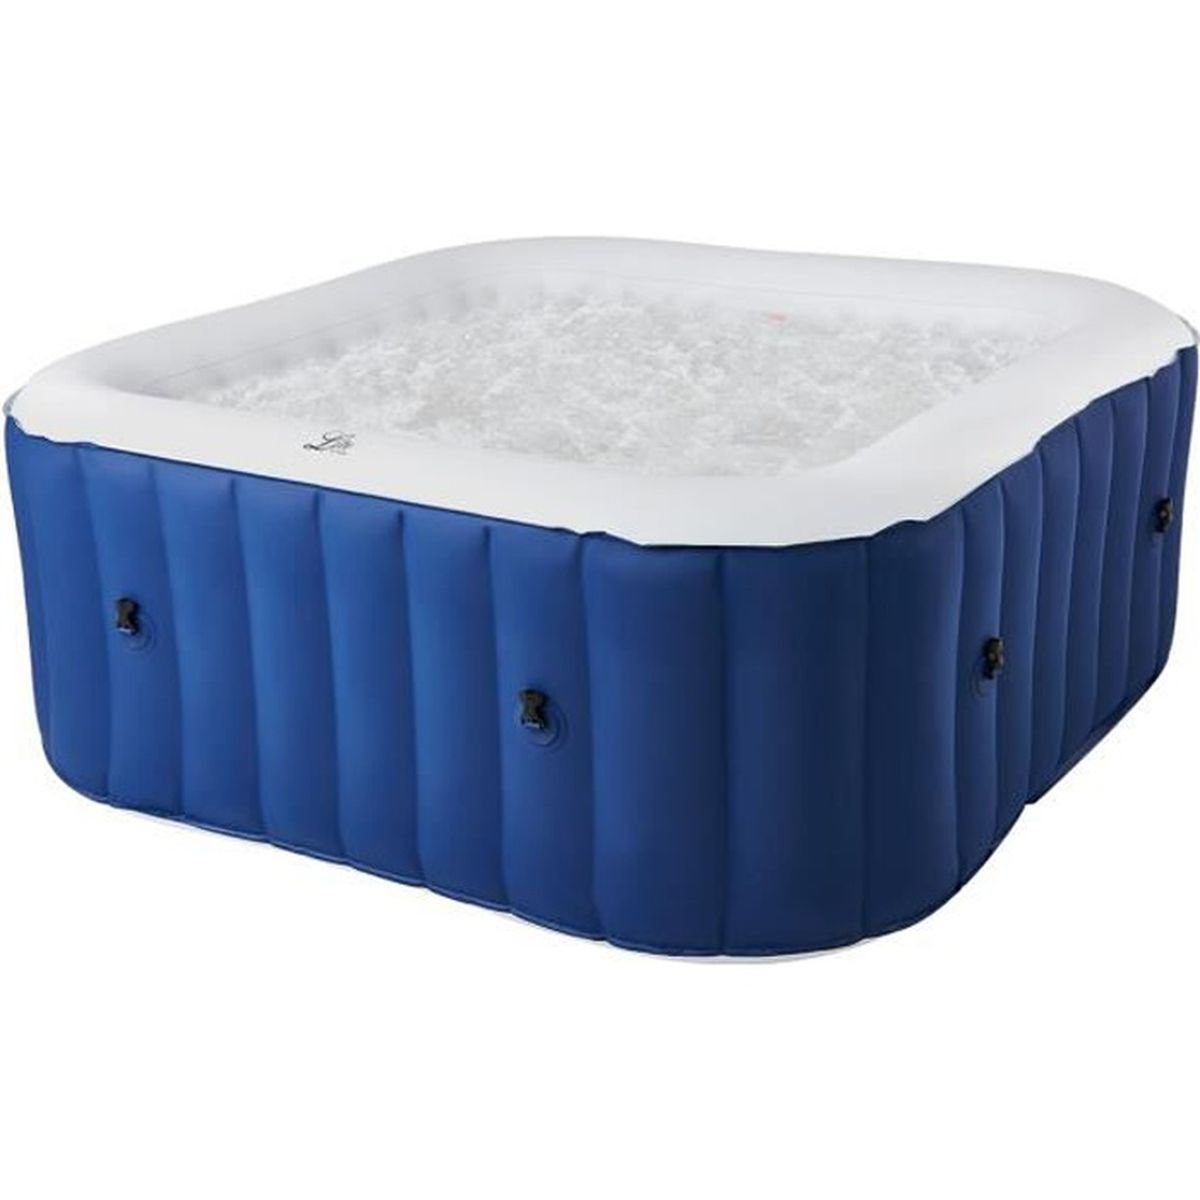 Amenagement Spa Gonflable Interieur spa gonflable carré 158cm lite - 4 places - achat / vente